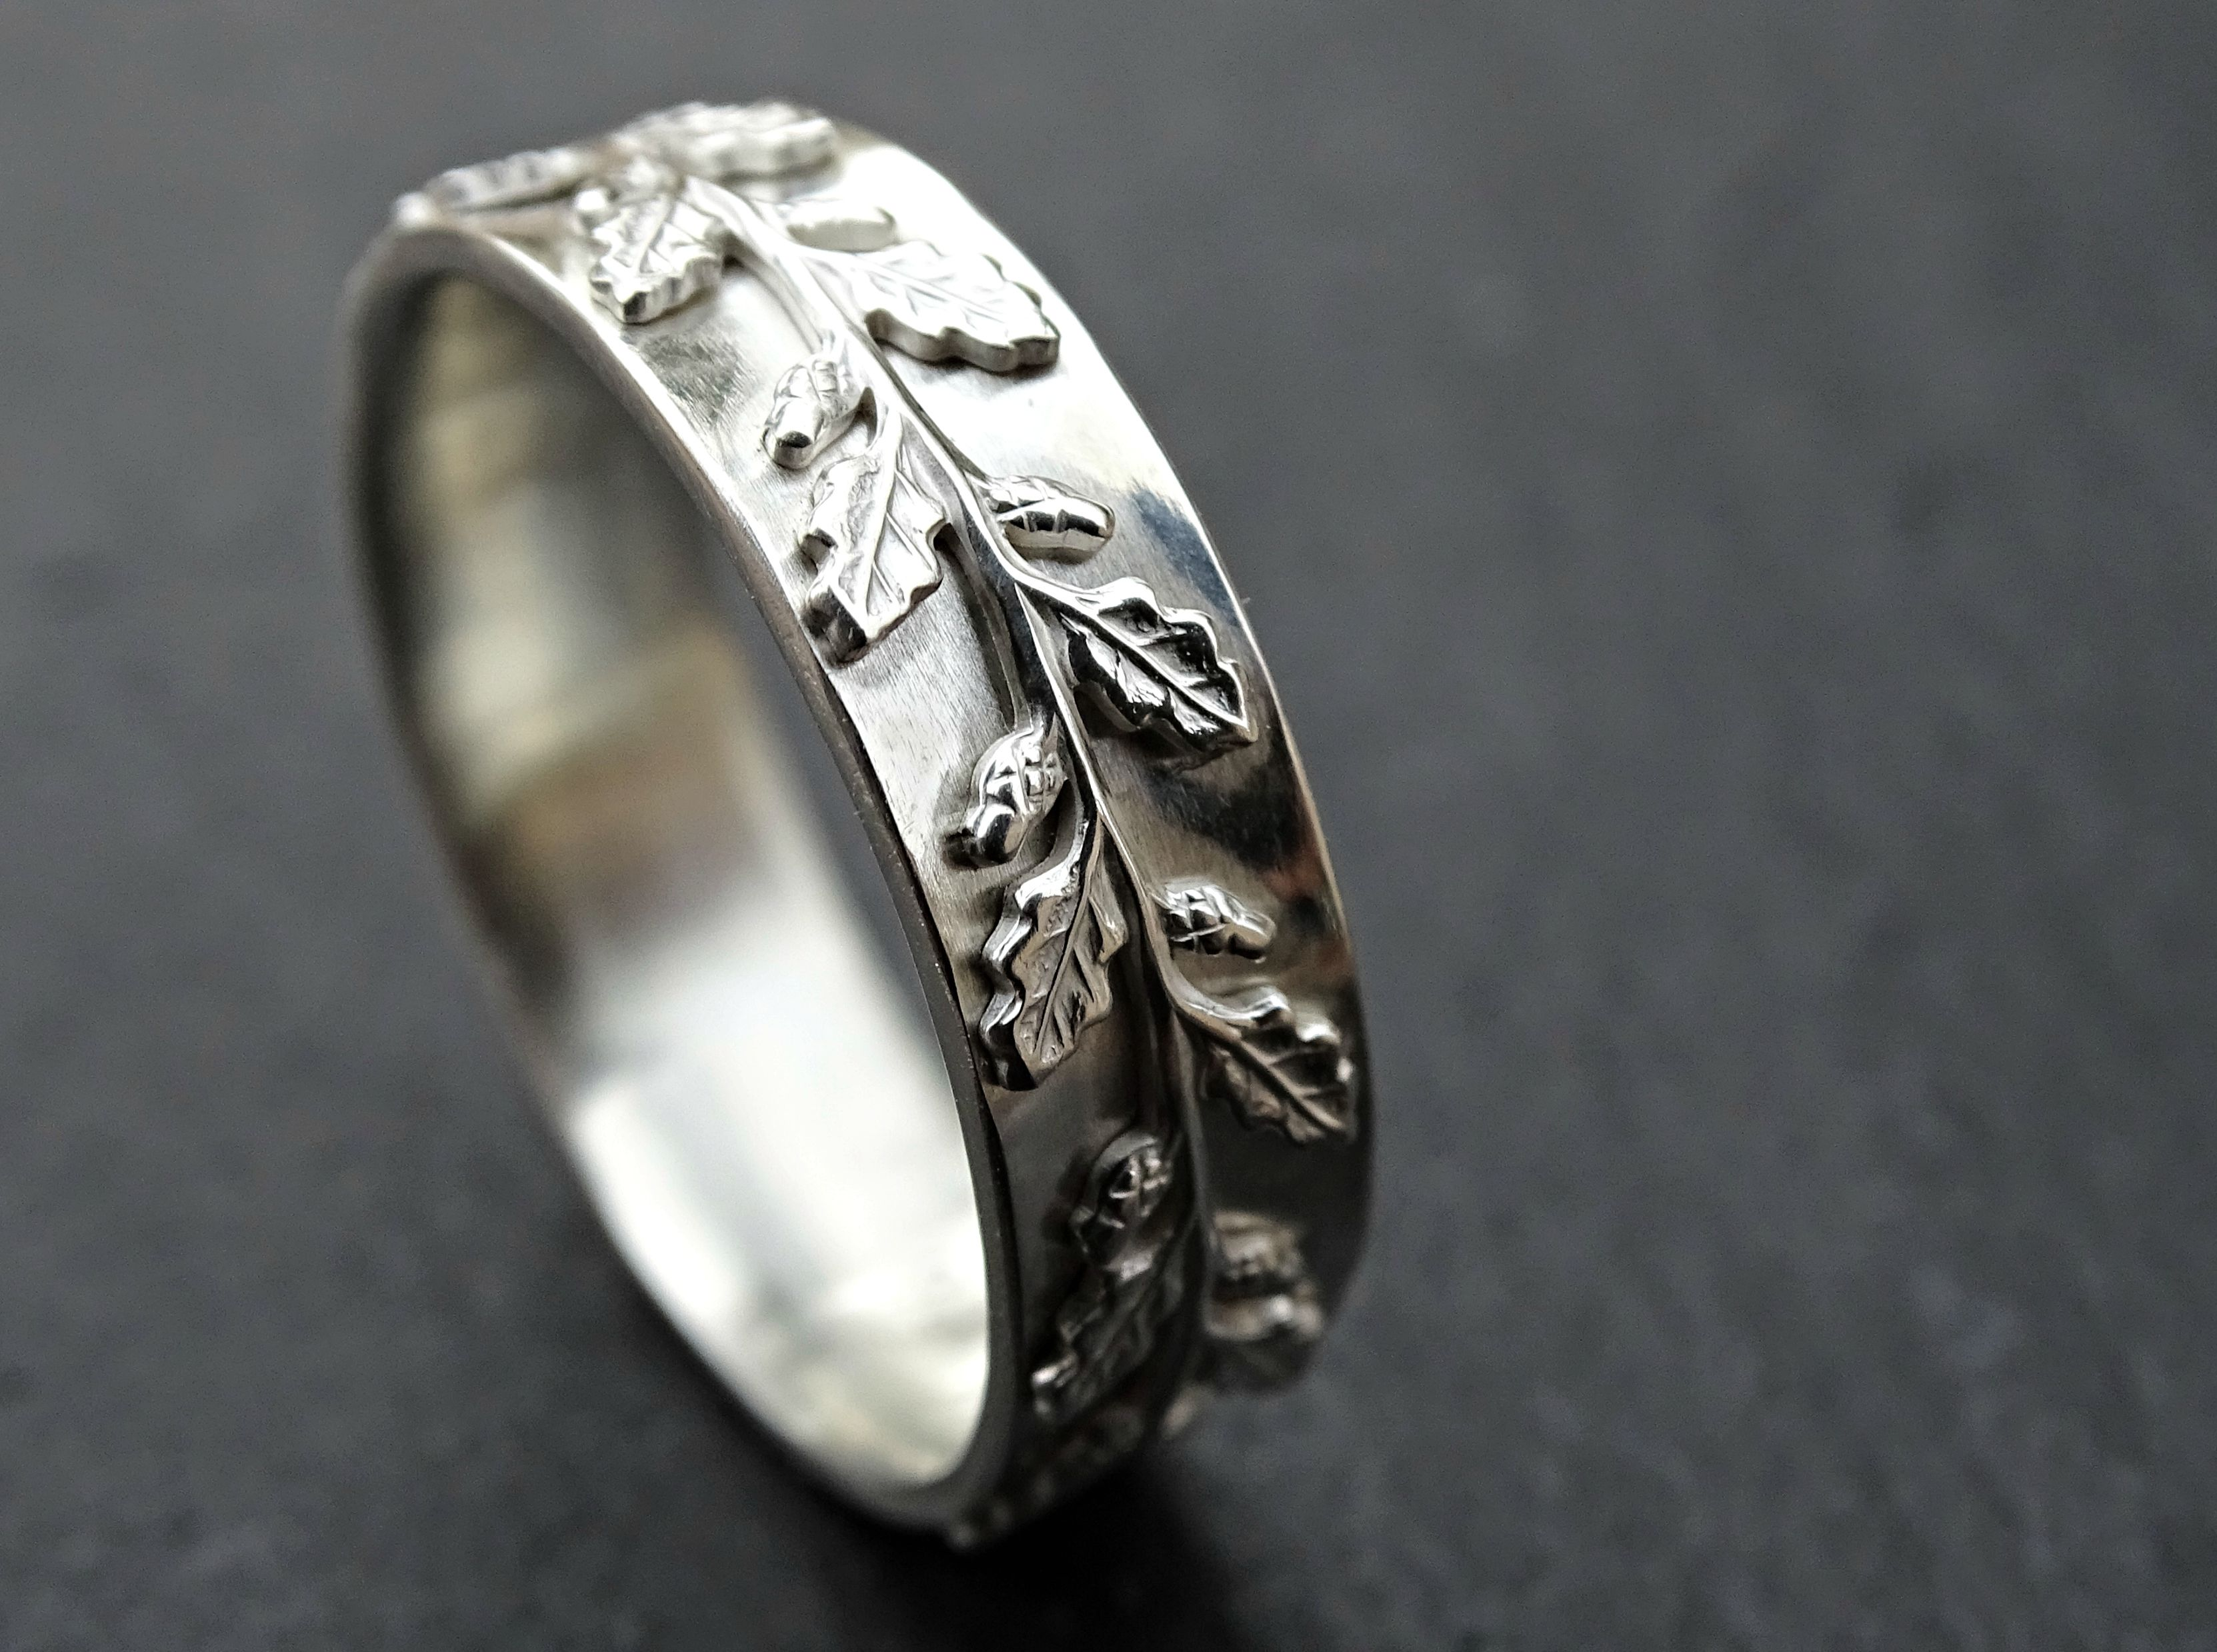 spanish engrave much cost fresh wedding it of ring engraved idea customized does full to kuhou elegant how rings beautiful fairy size in